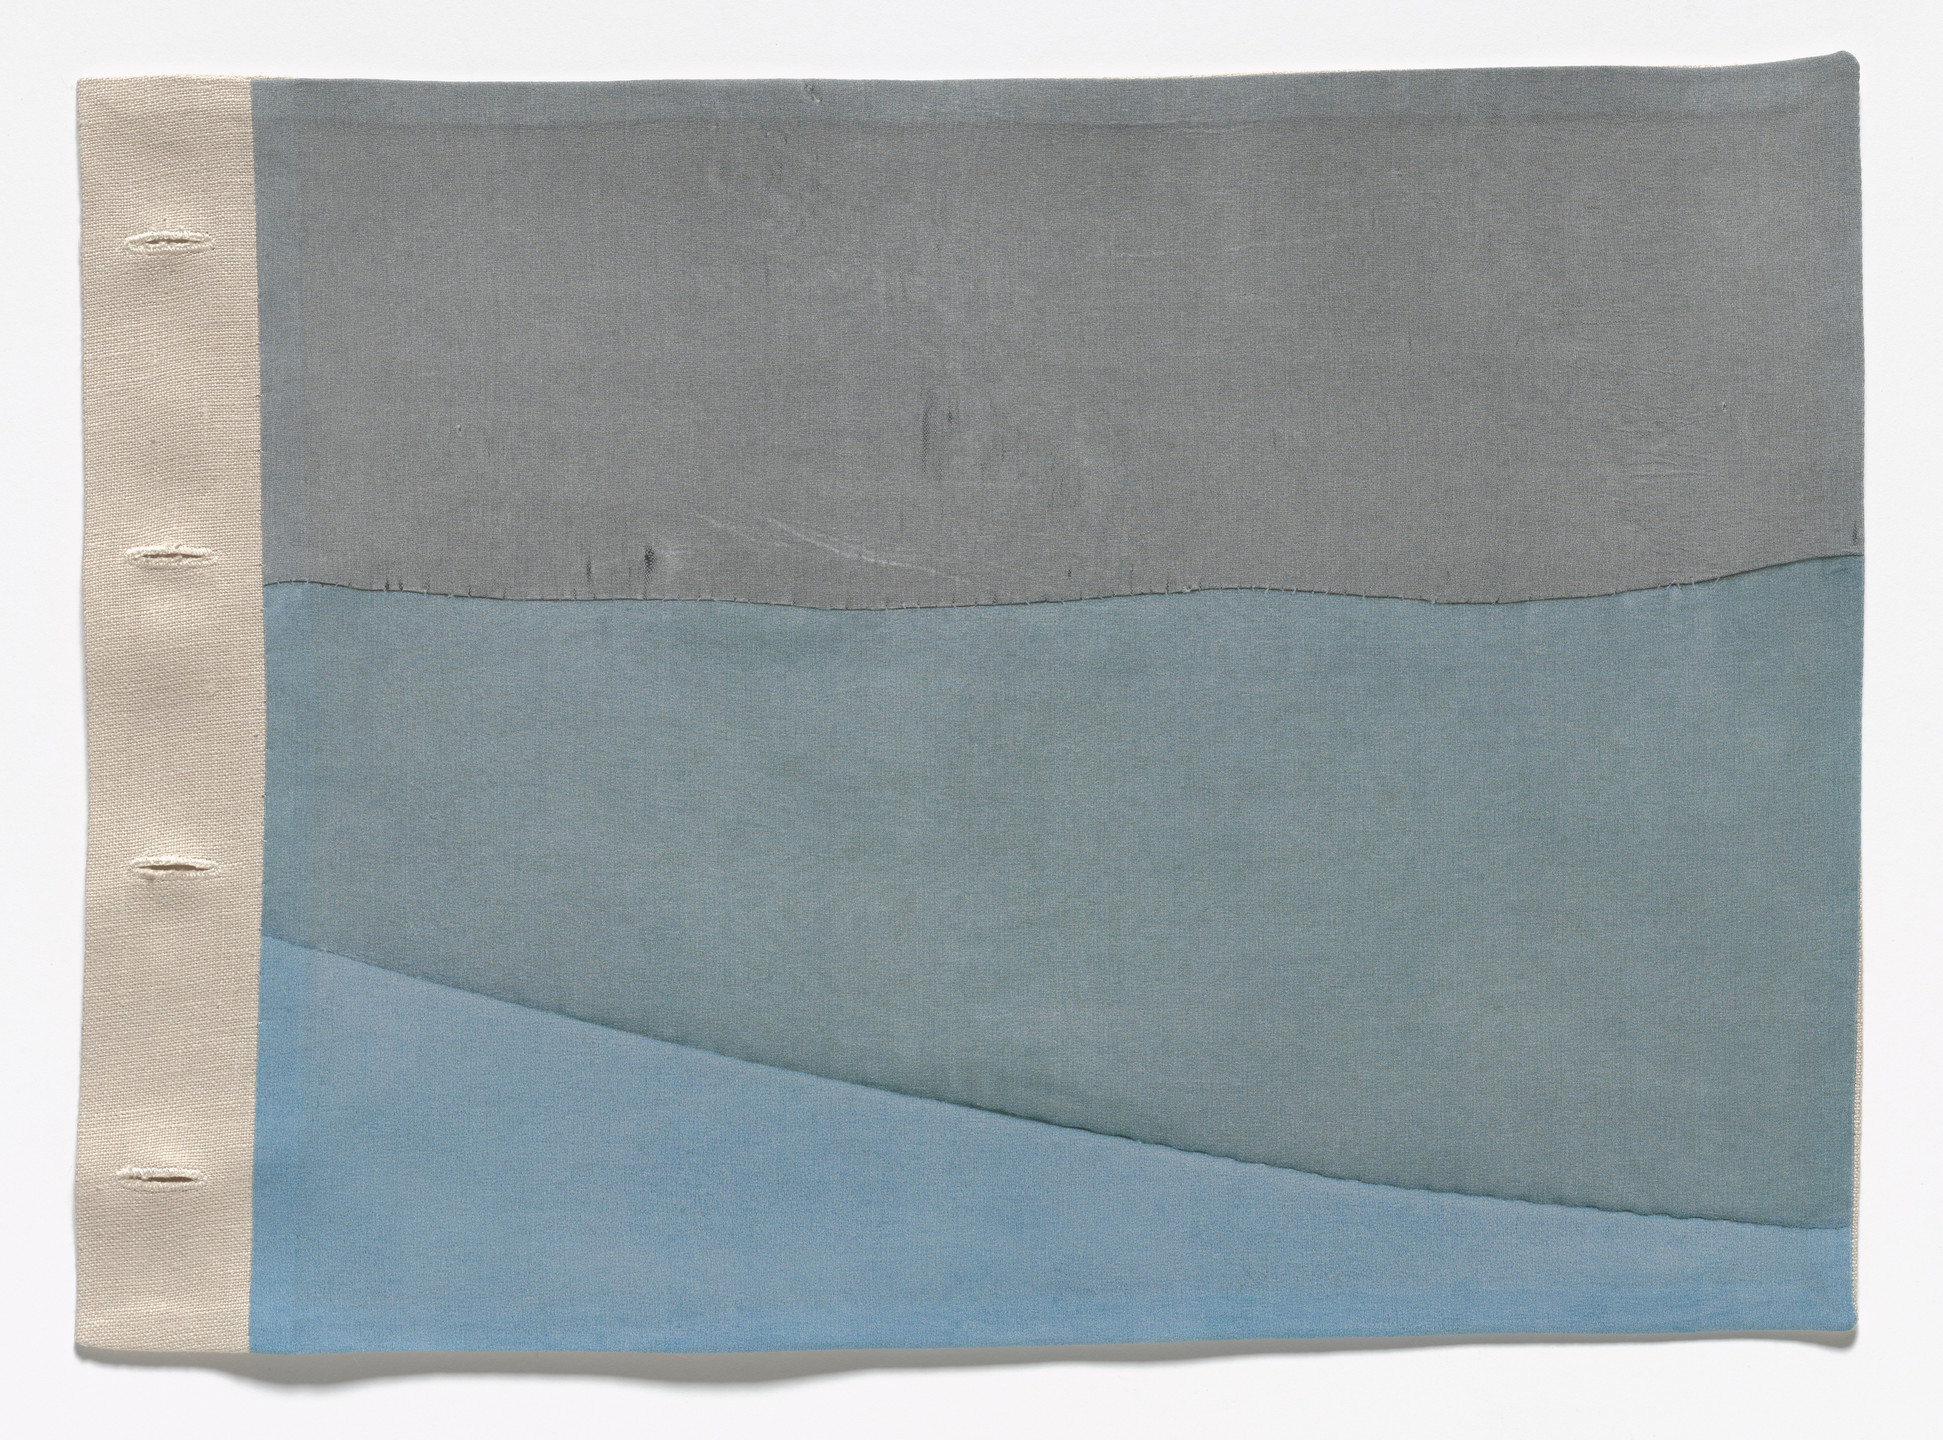 Louise Bourgeois. Untitled, no. 6 of 23, from the illustrated book, Ode à la Bièvre. 2007